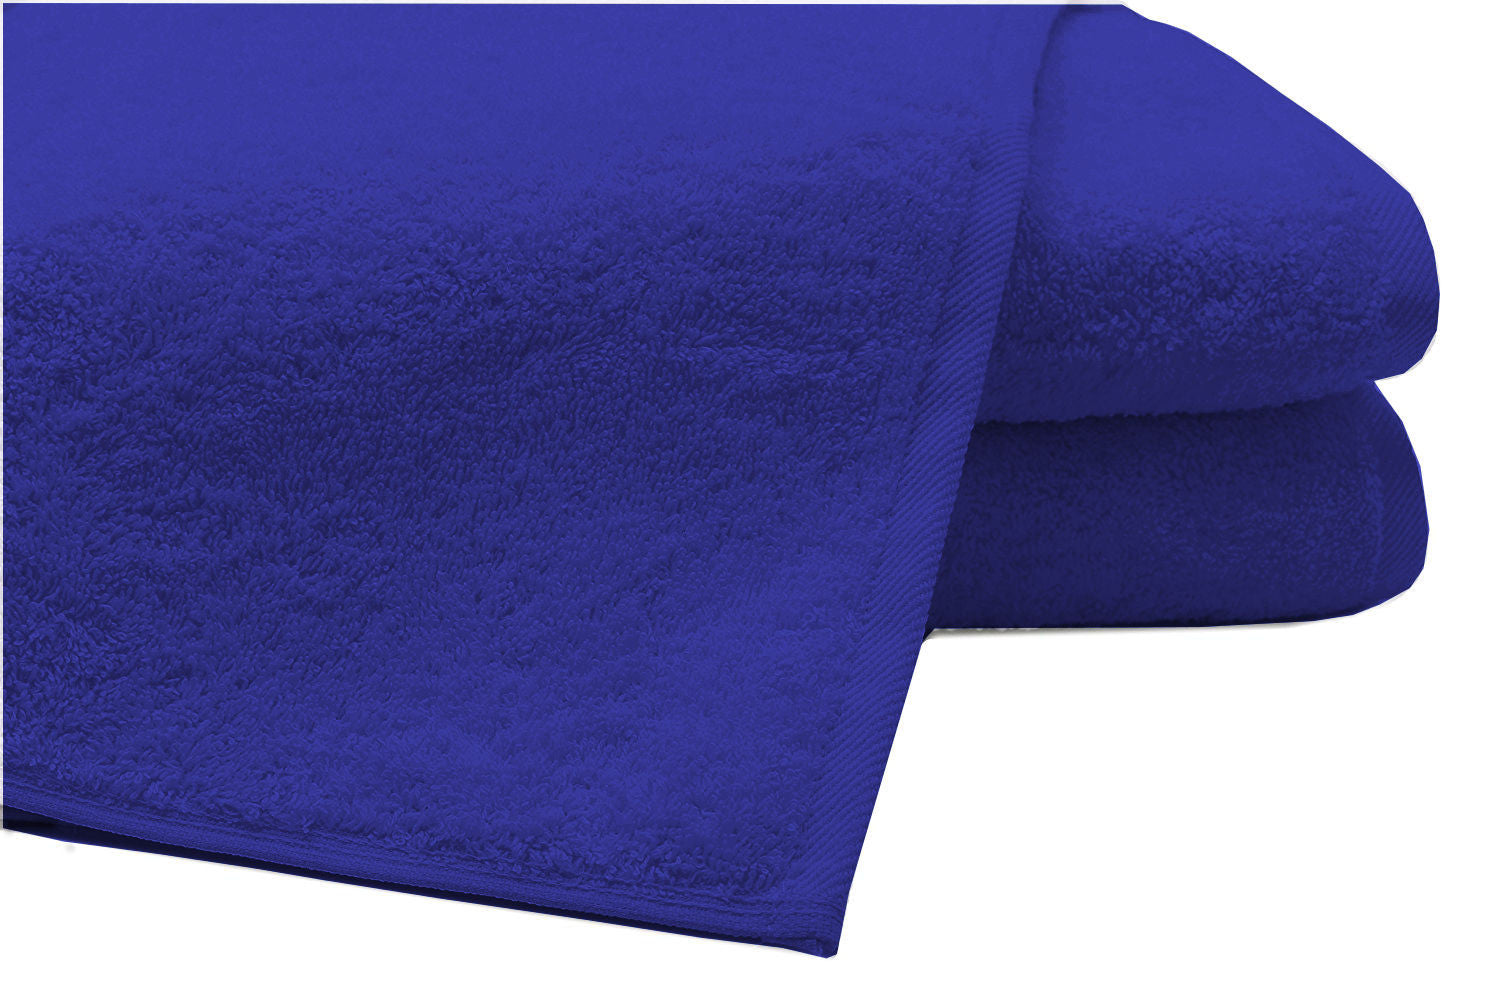 Pack of 2 Extra Large Bath Sheets100% Cotton Towels Jumbo Size Royal Blue COLOUR